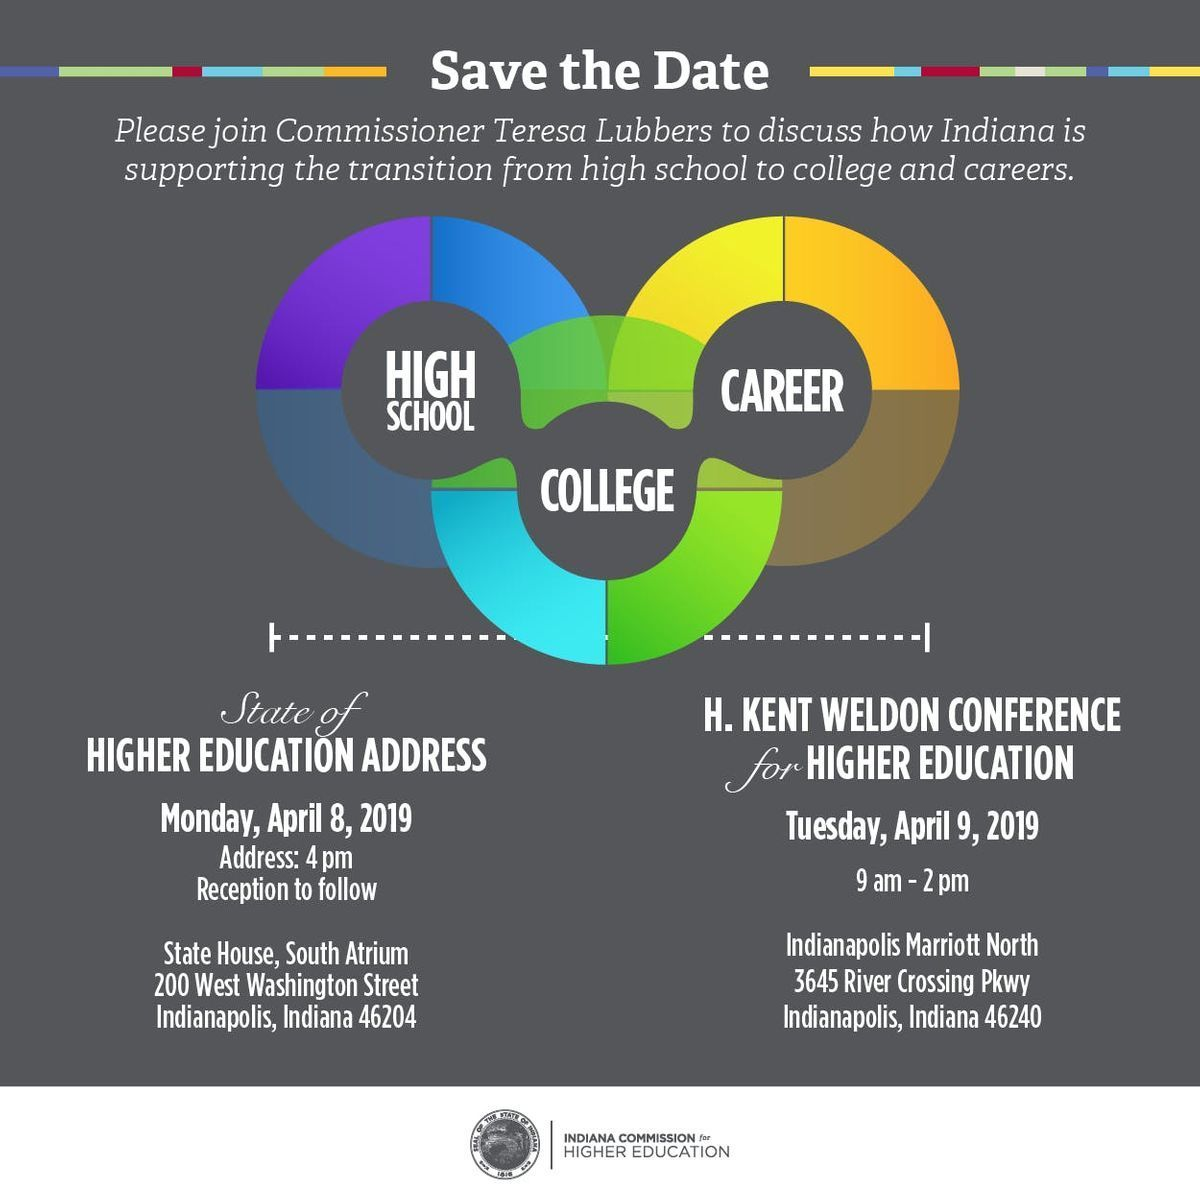 2019 H. Kent Weldon Conference for Higher Education